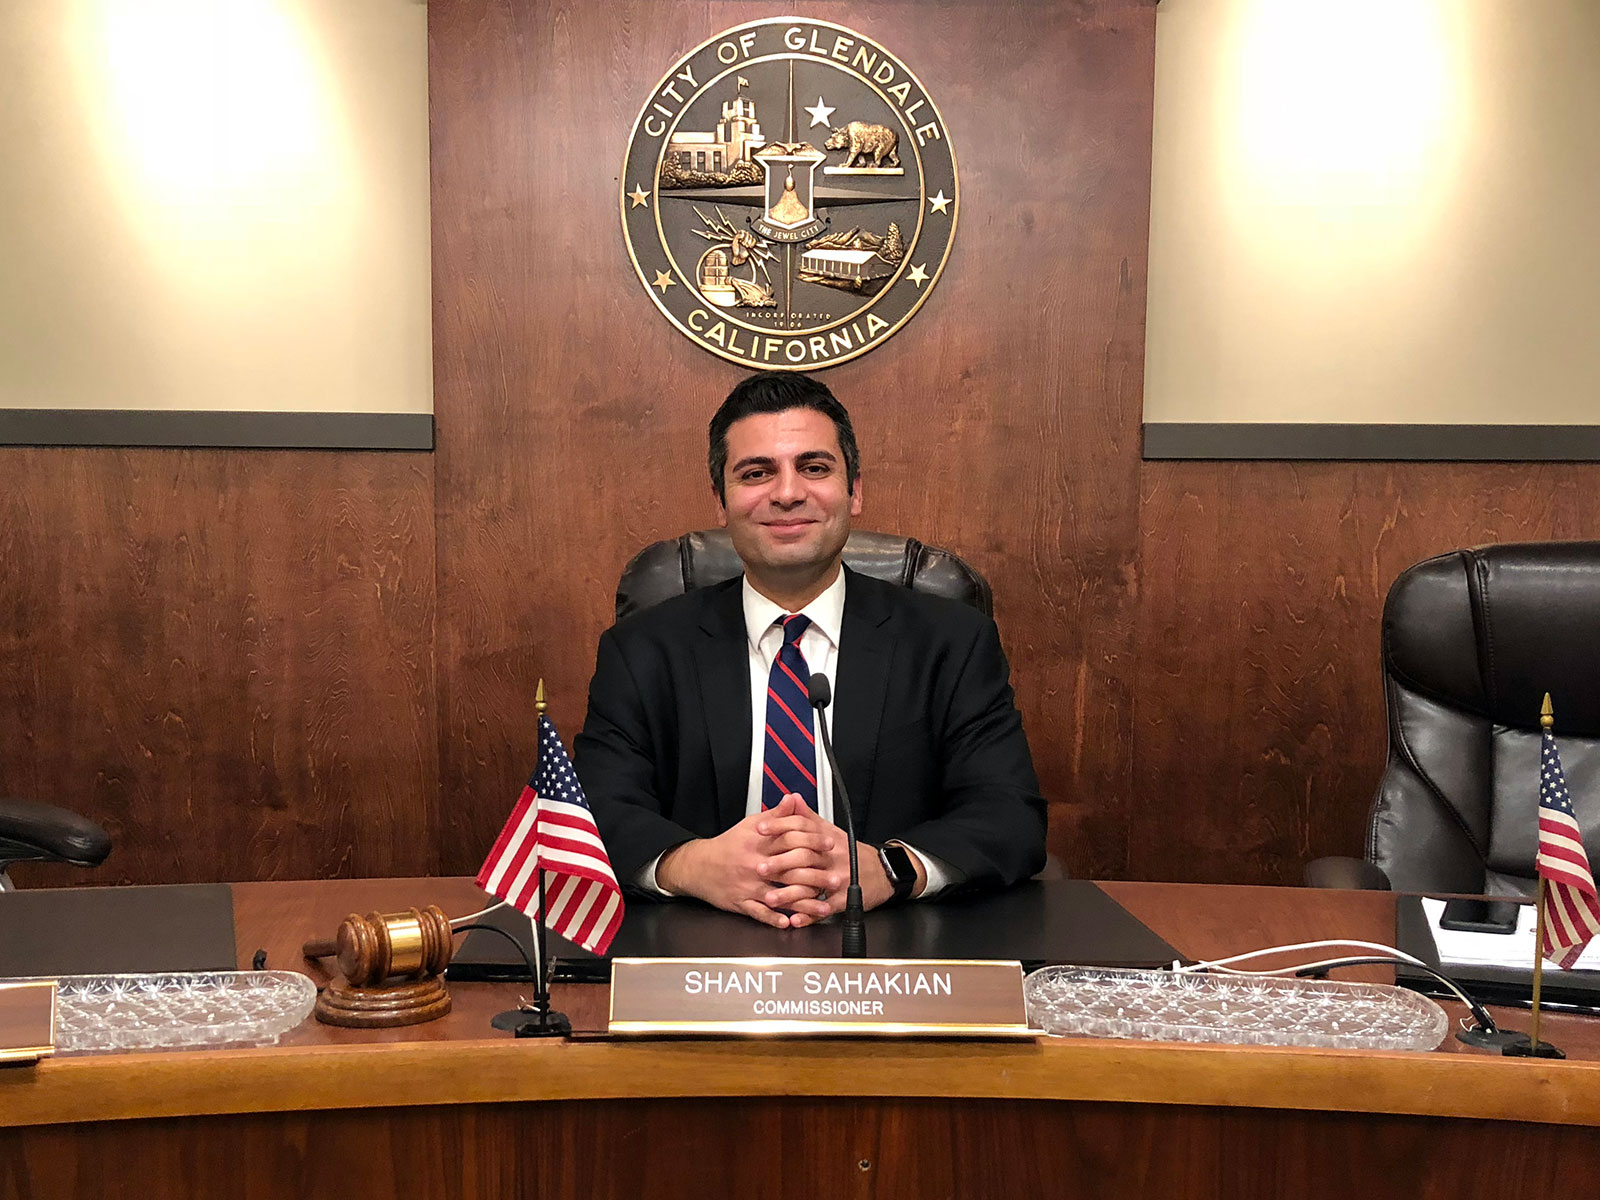 Shant Sahakian Appointed Chairman of Glendale Arts and Culture Commission